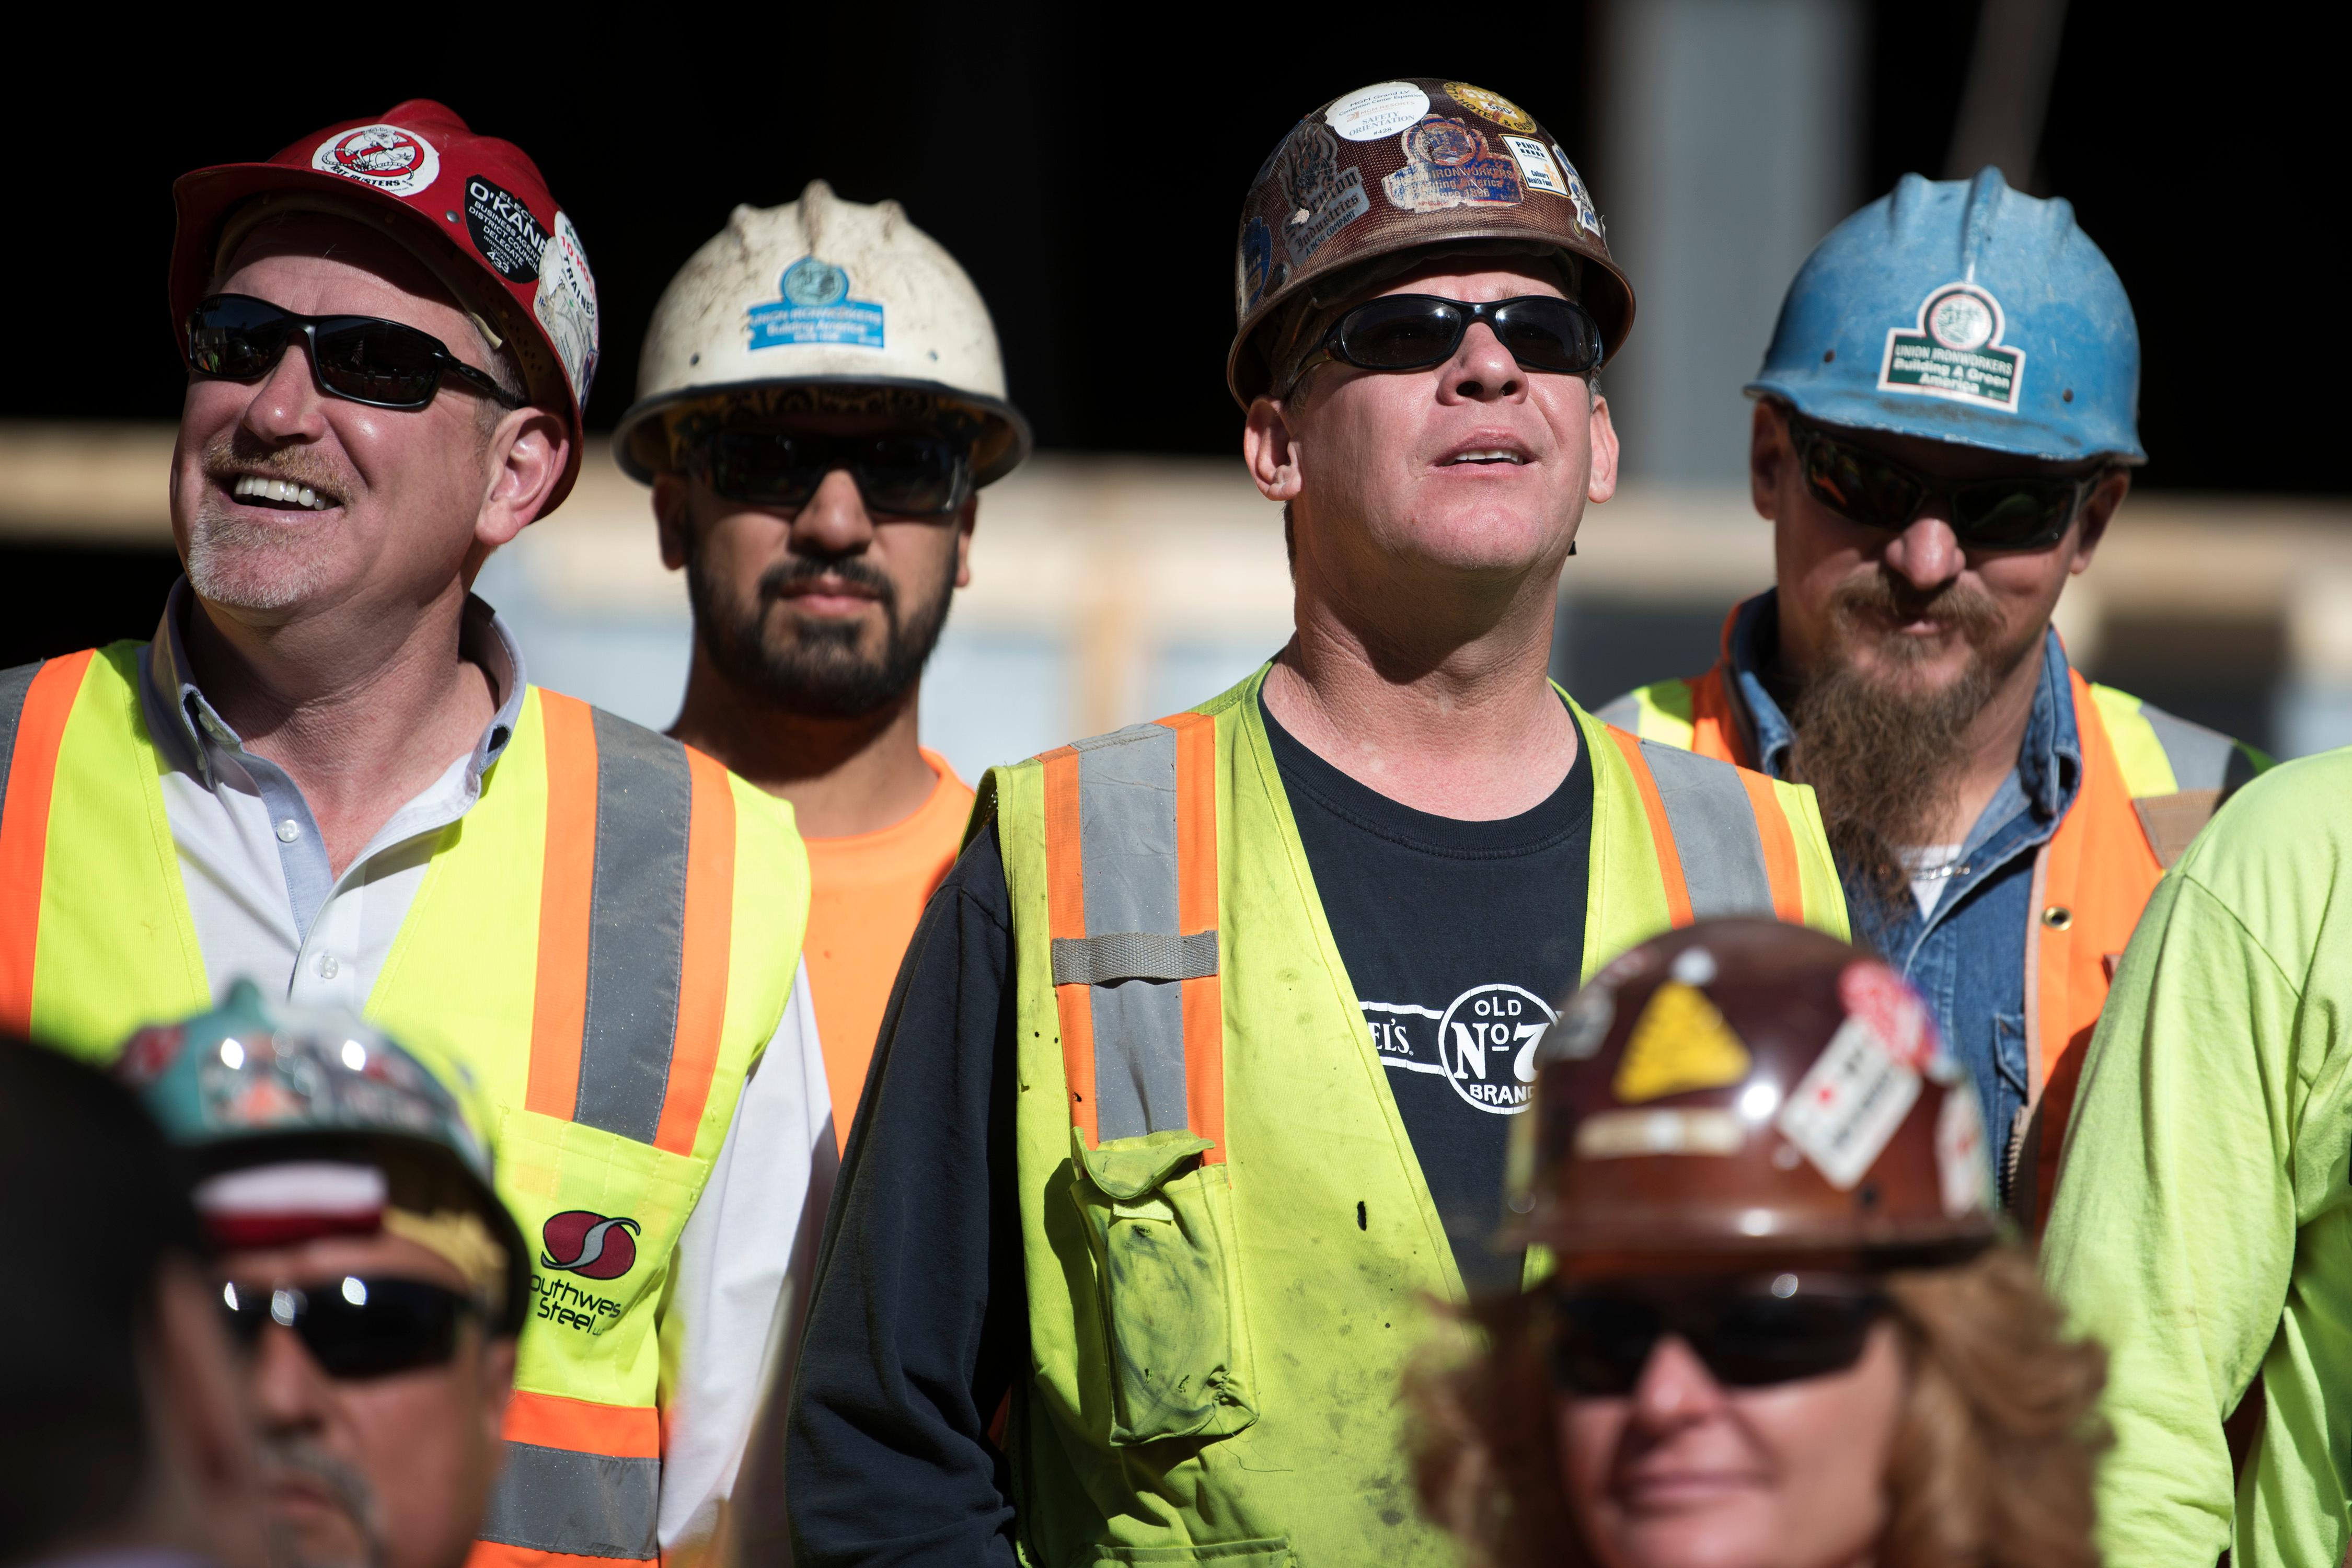 Iron workers wait for the final beam to be raised into place during the topping off ceremony for MGM Grand's expanded conference center Tuesday, January 30, 2018. CREDIT: Sam Morris/Las Vegas News Bureau